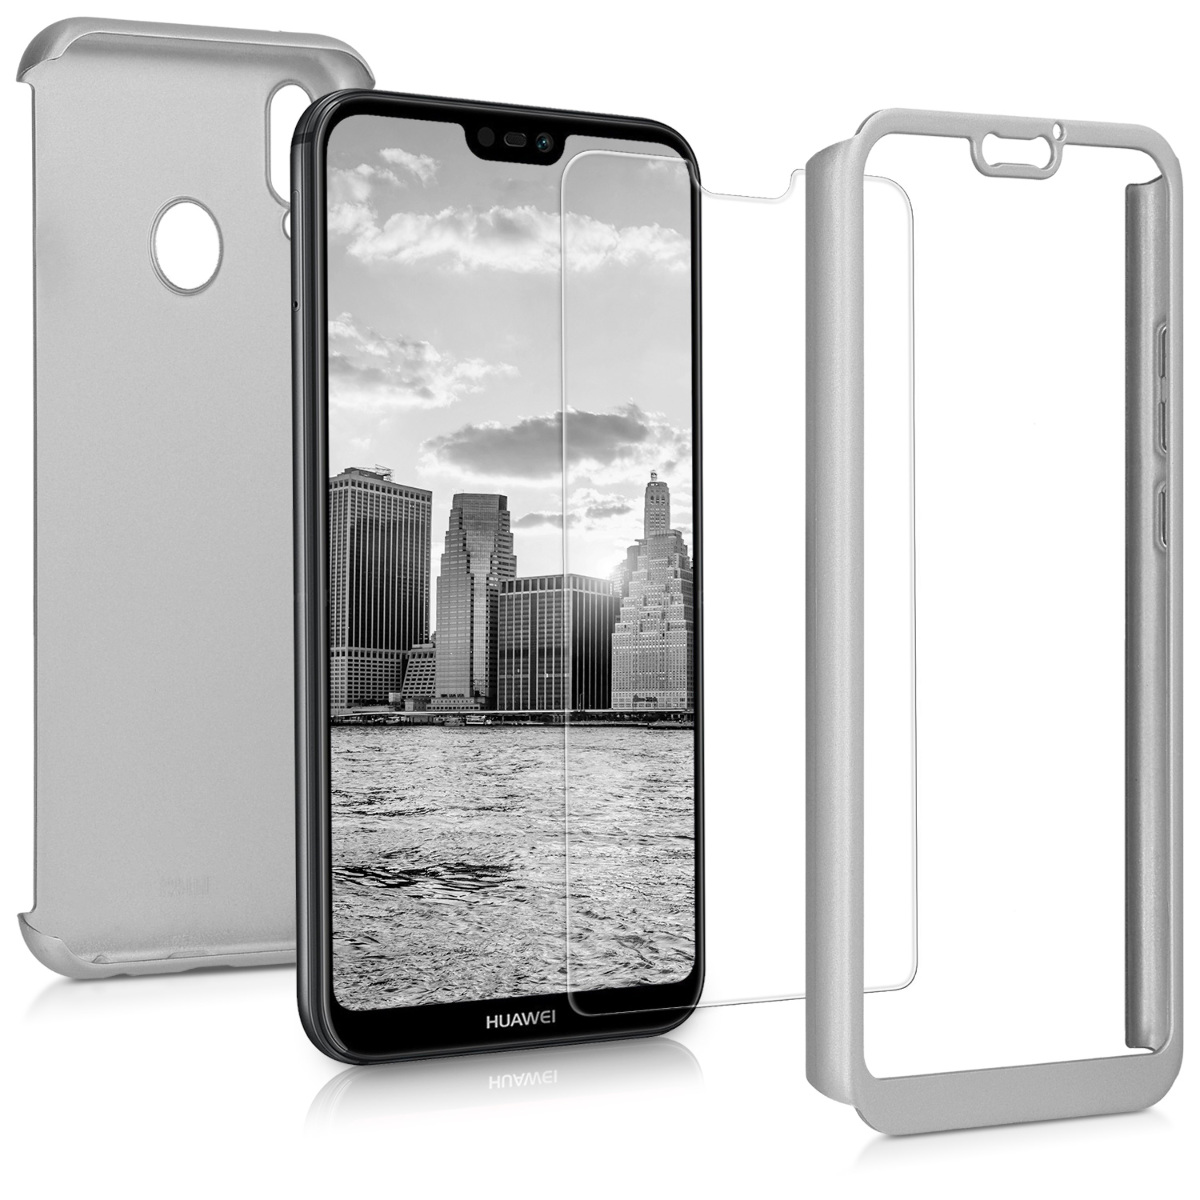 KW Θήκη Full Body Huawei P20 Lite & Tempered Glass - Metallic Silver (44888.67)